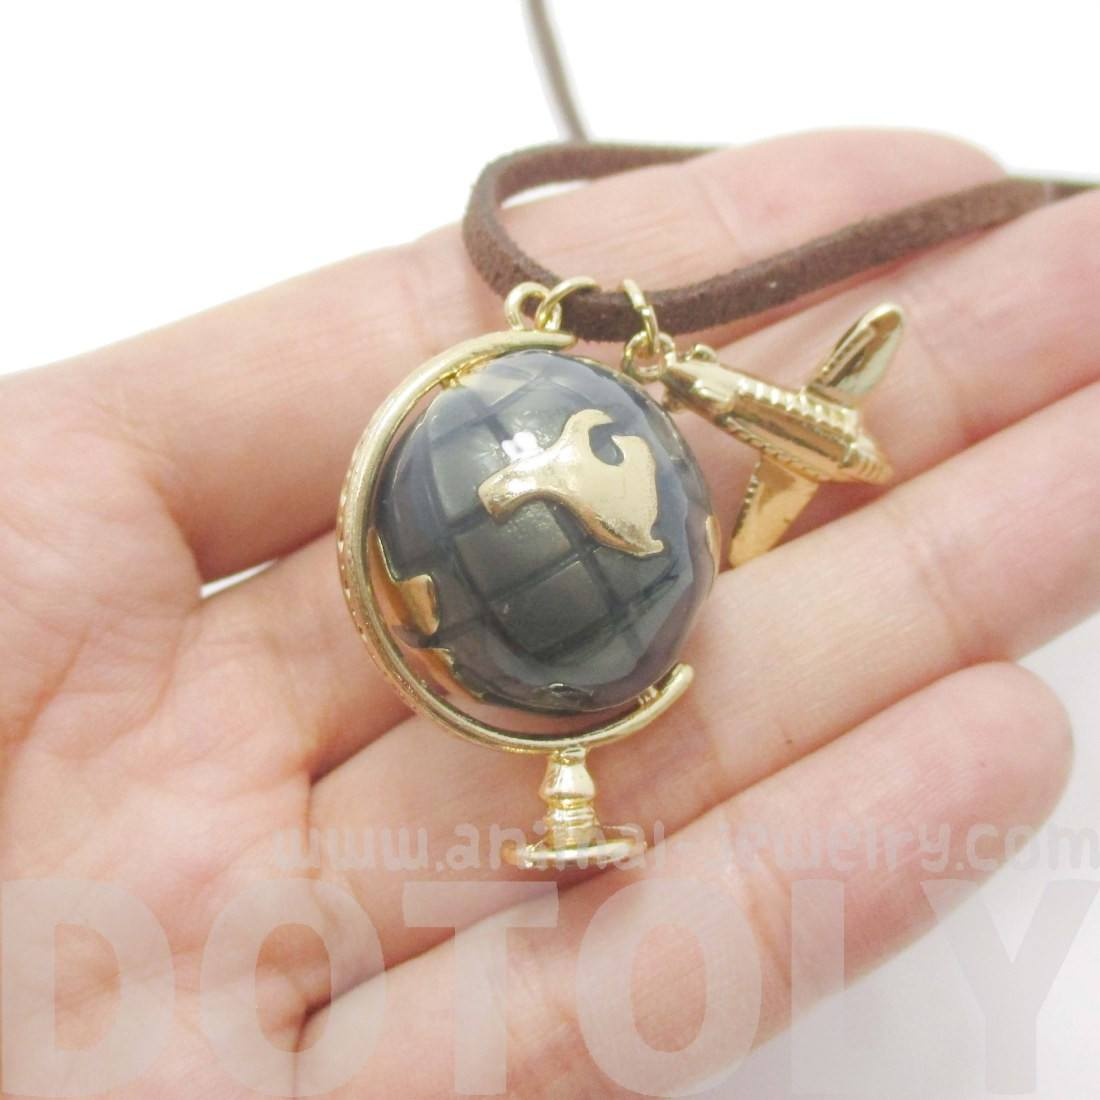 Vintage Style Earth Globe and Airplane Pendant Necklace